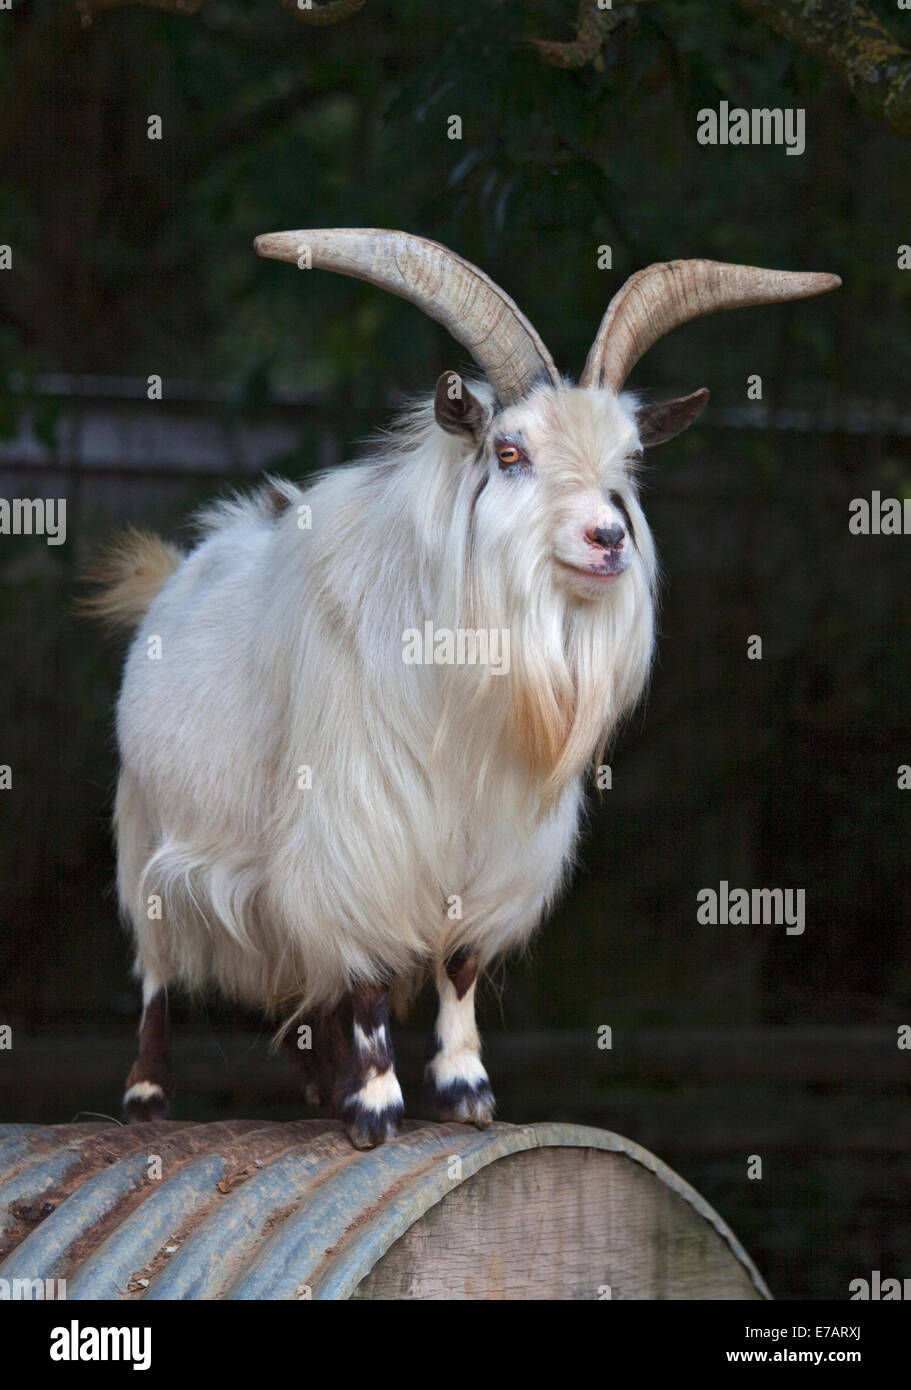 Afriican Pygmy Goat - Stock Image